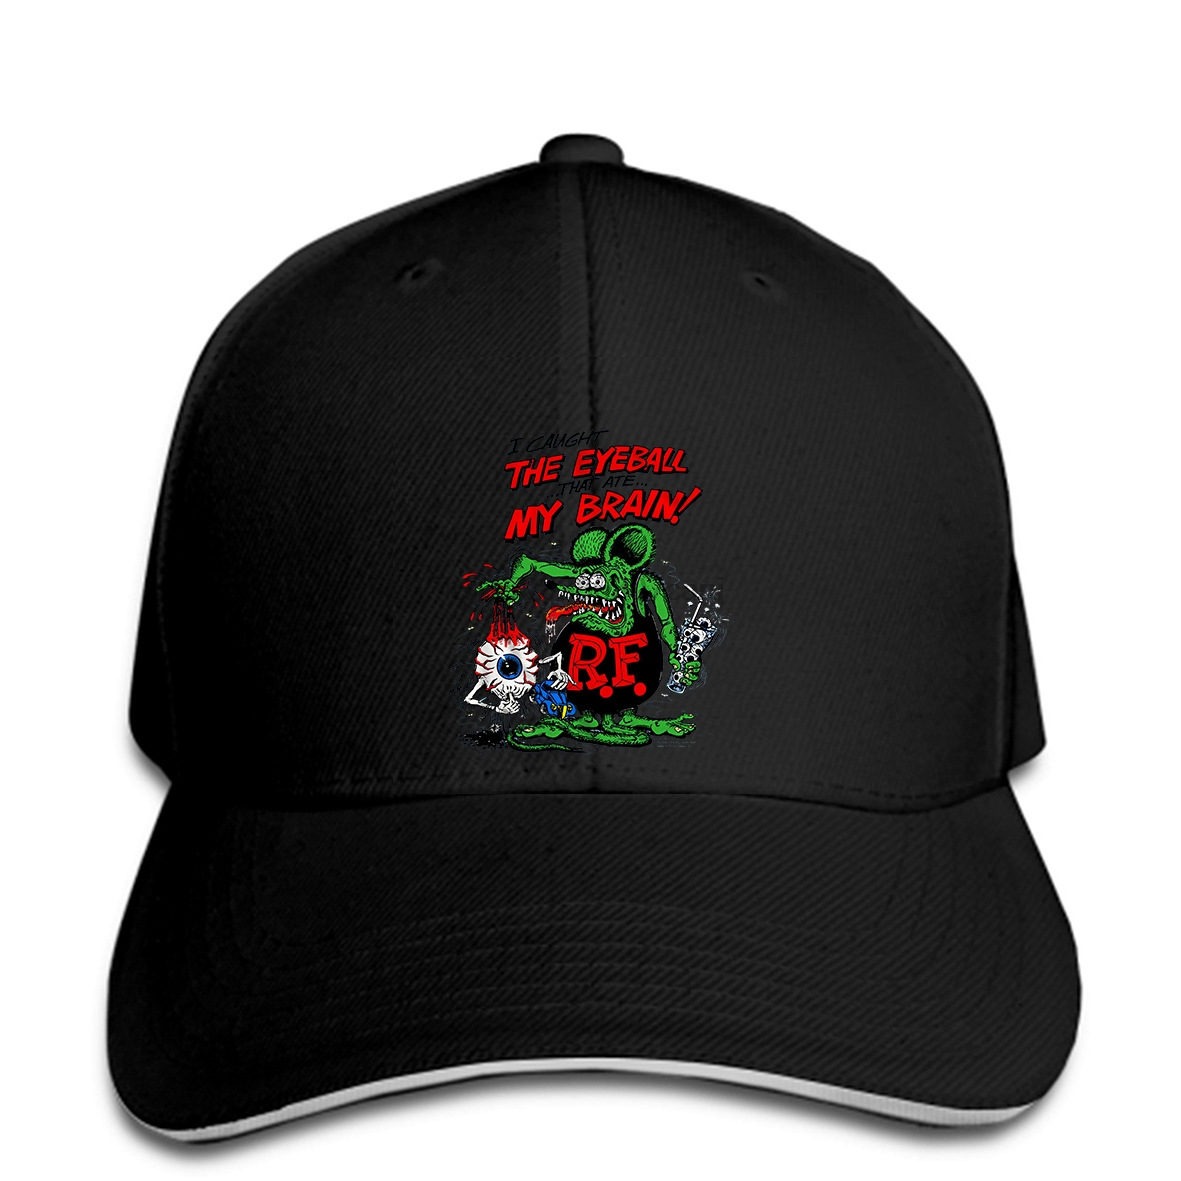 Us 8 81 11 Off Baseball Cap Ed Big Daddy Roth Rat Fink Creation The Eyeball That Ate My Brain Adult Print Hat In Men S Baseball Caps From Apparel